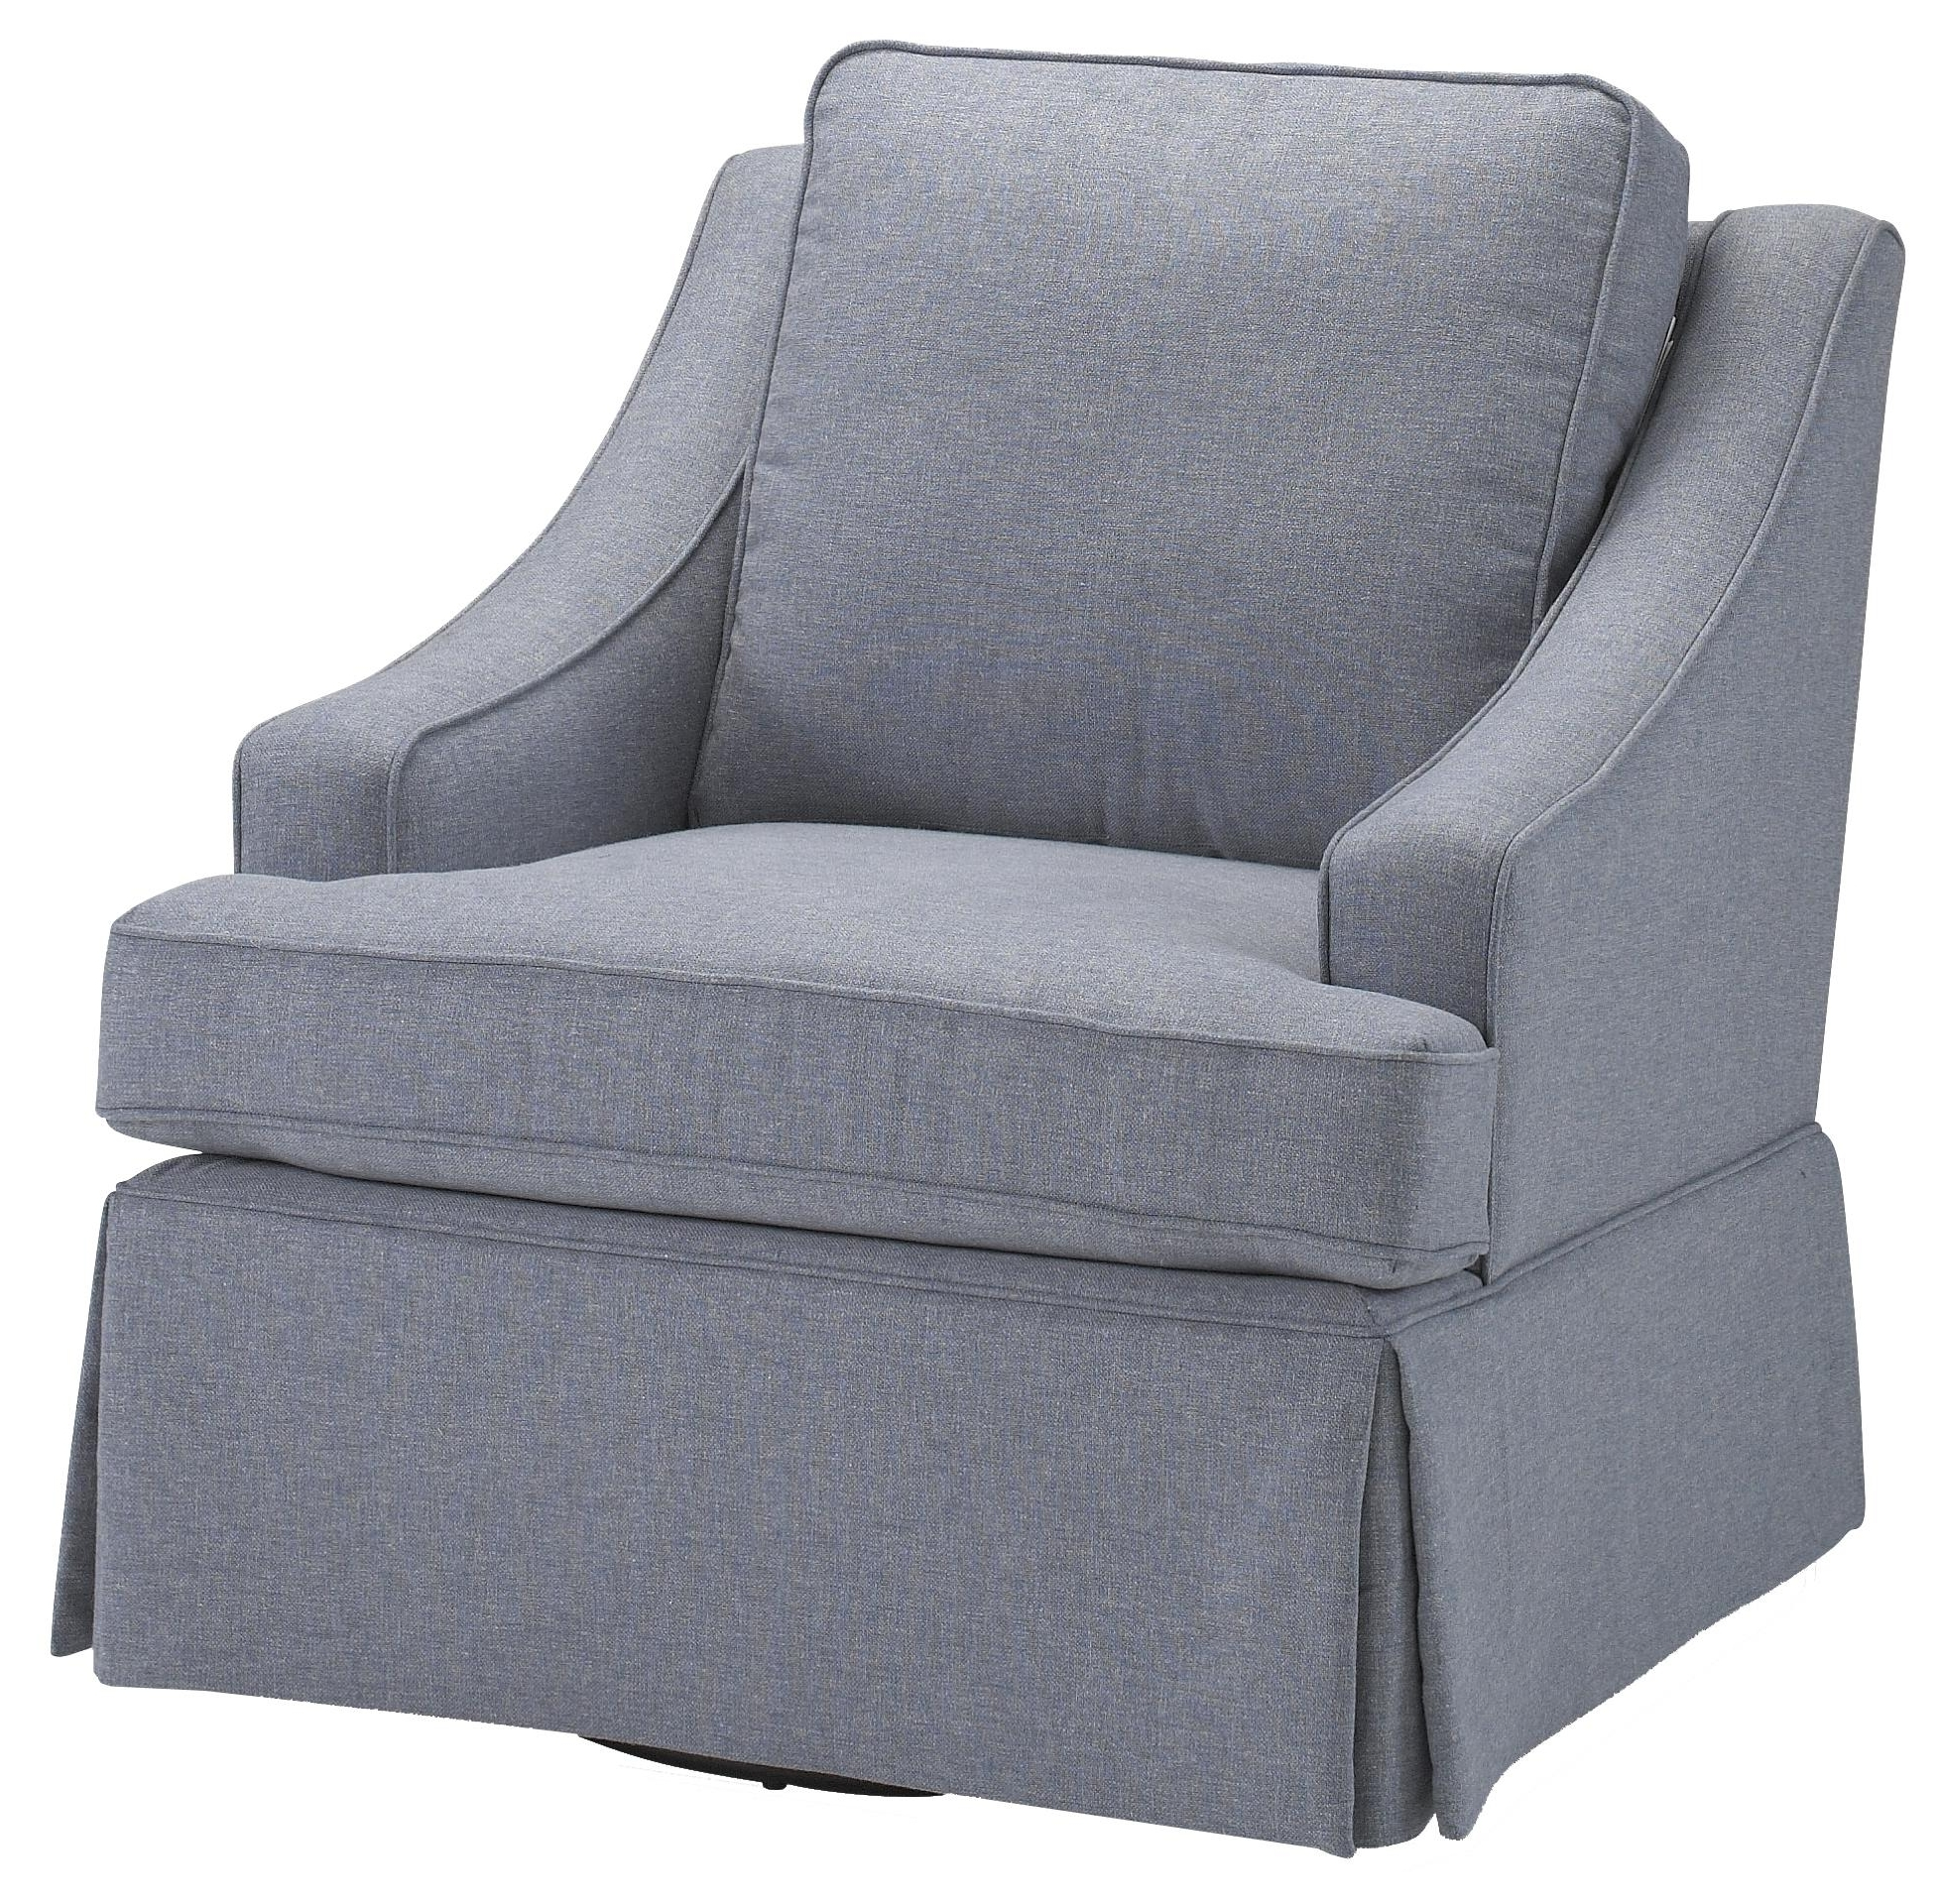 Famous Best Home Furnishings Swivel Glide Chairs Contemporary Ayla Swivel Throughout Swivel Rocking Chairs (View 8 of 15)